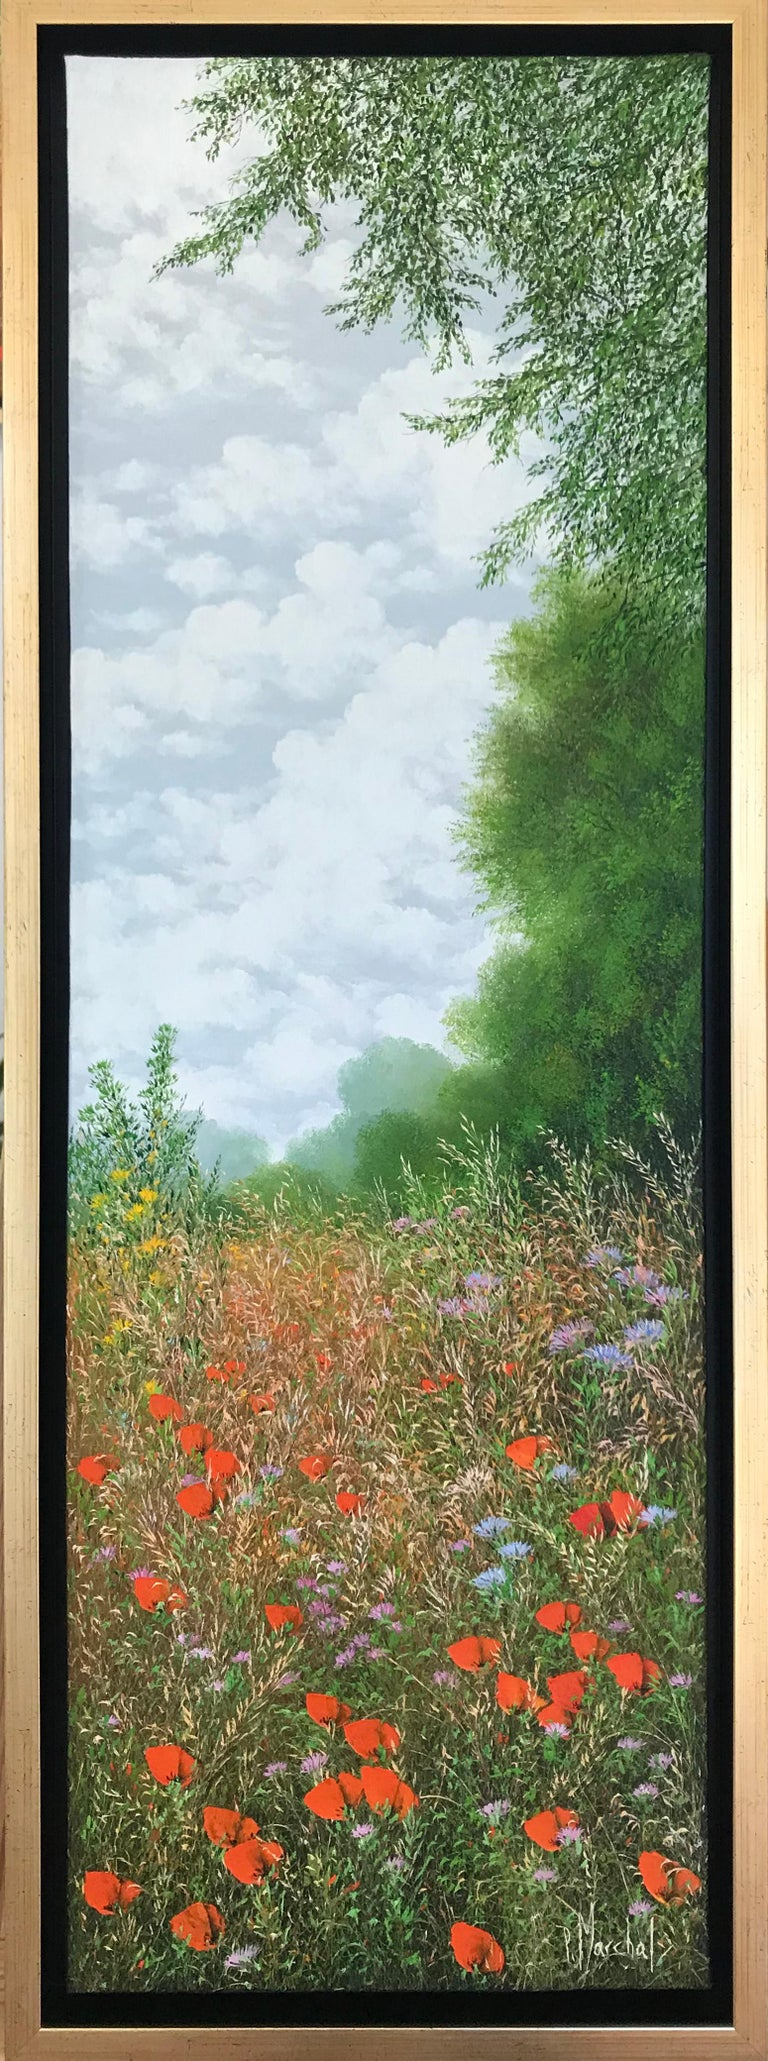 Eté, oil painting on canvas , size with frame 95.4 x 35.4 cm , 2019 - Painting by Patrice Marchal